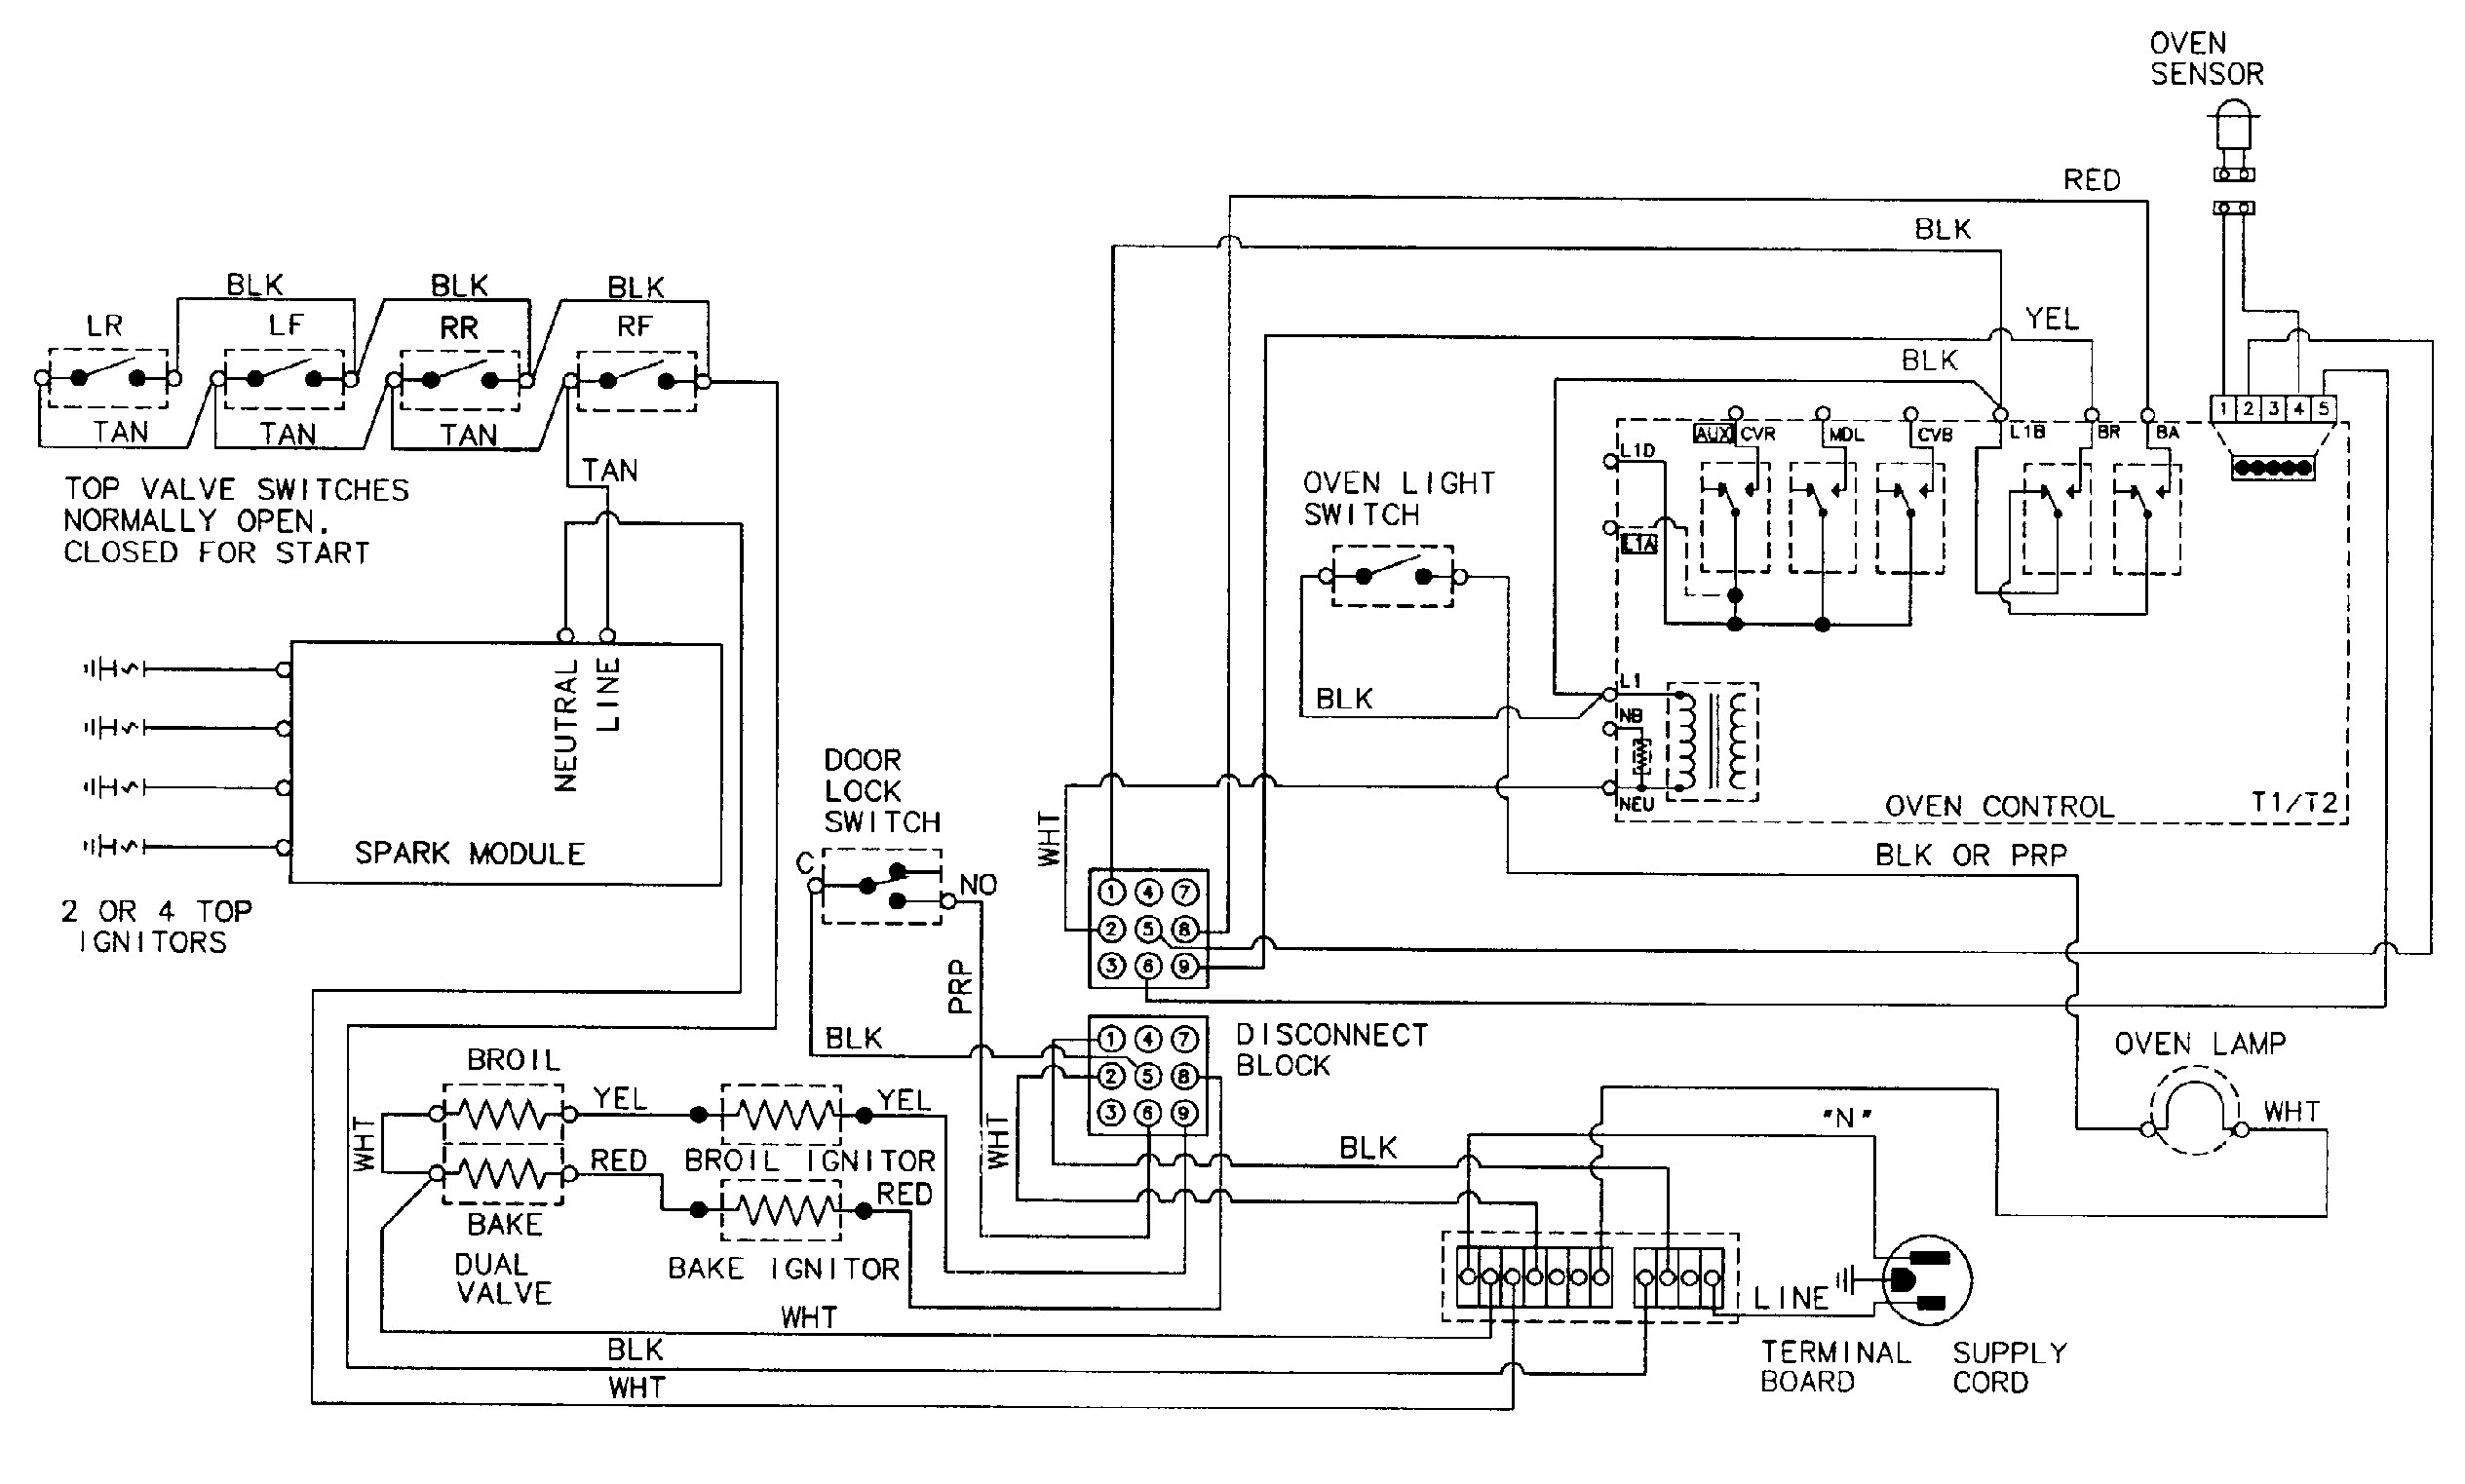 jenn air wiring diagram wiring diagram only for jenn air